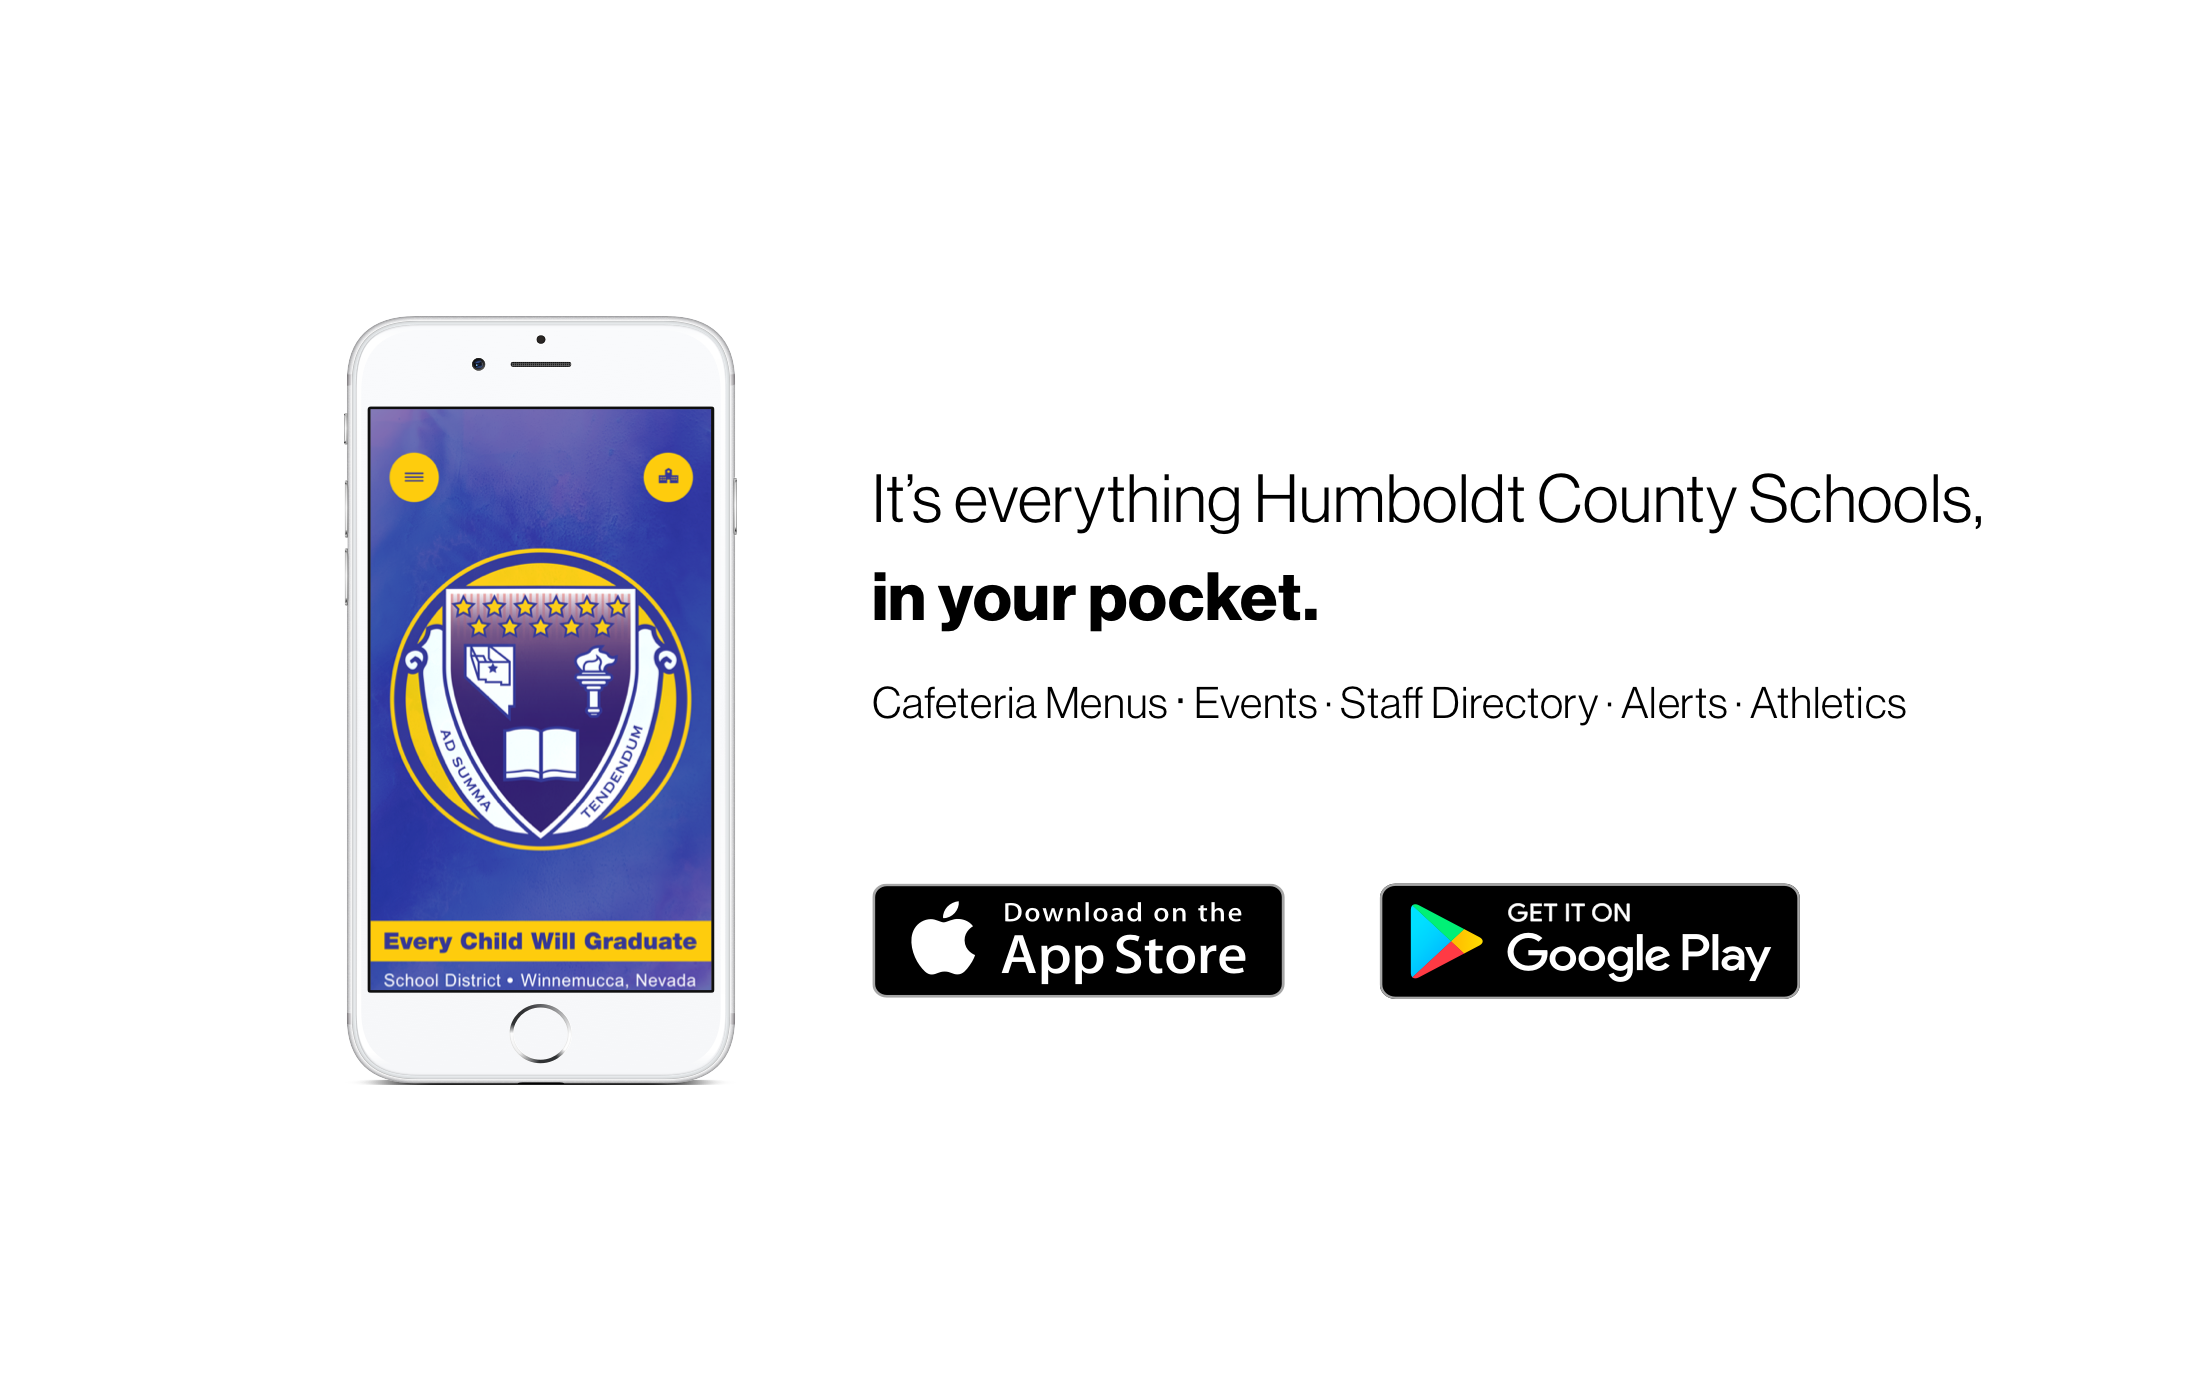 Image of phone with Everything Humboldt County Schools, in your pocket. Links to Apple App Store and Google Play app store.